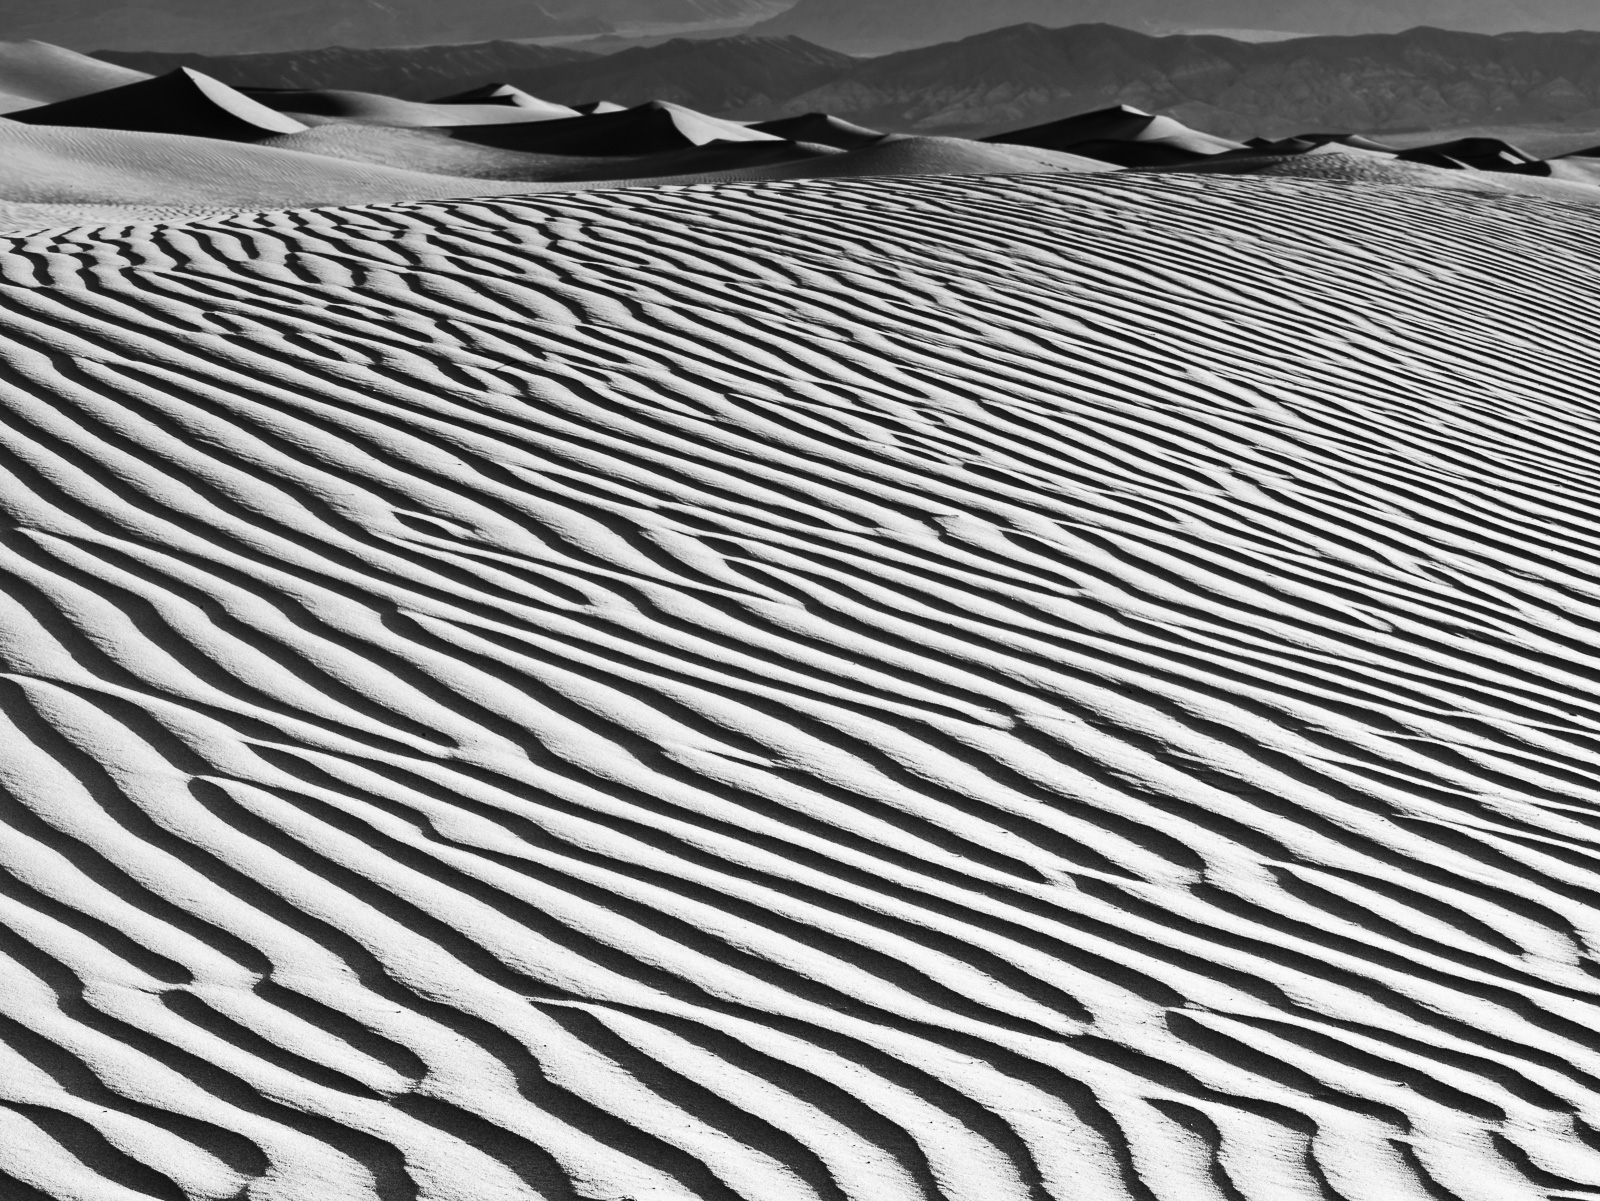 Death Valley, Black and White, California, Death Valley National Park, Desert, Dune, Dunes, horizontal, BW, B&W, Black, White, photo